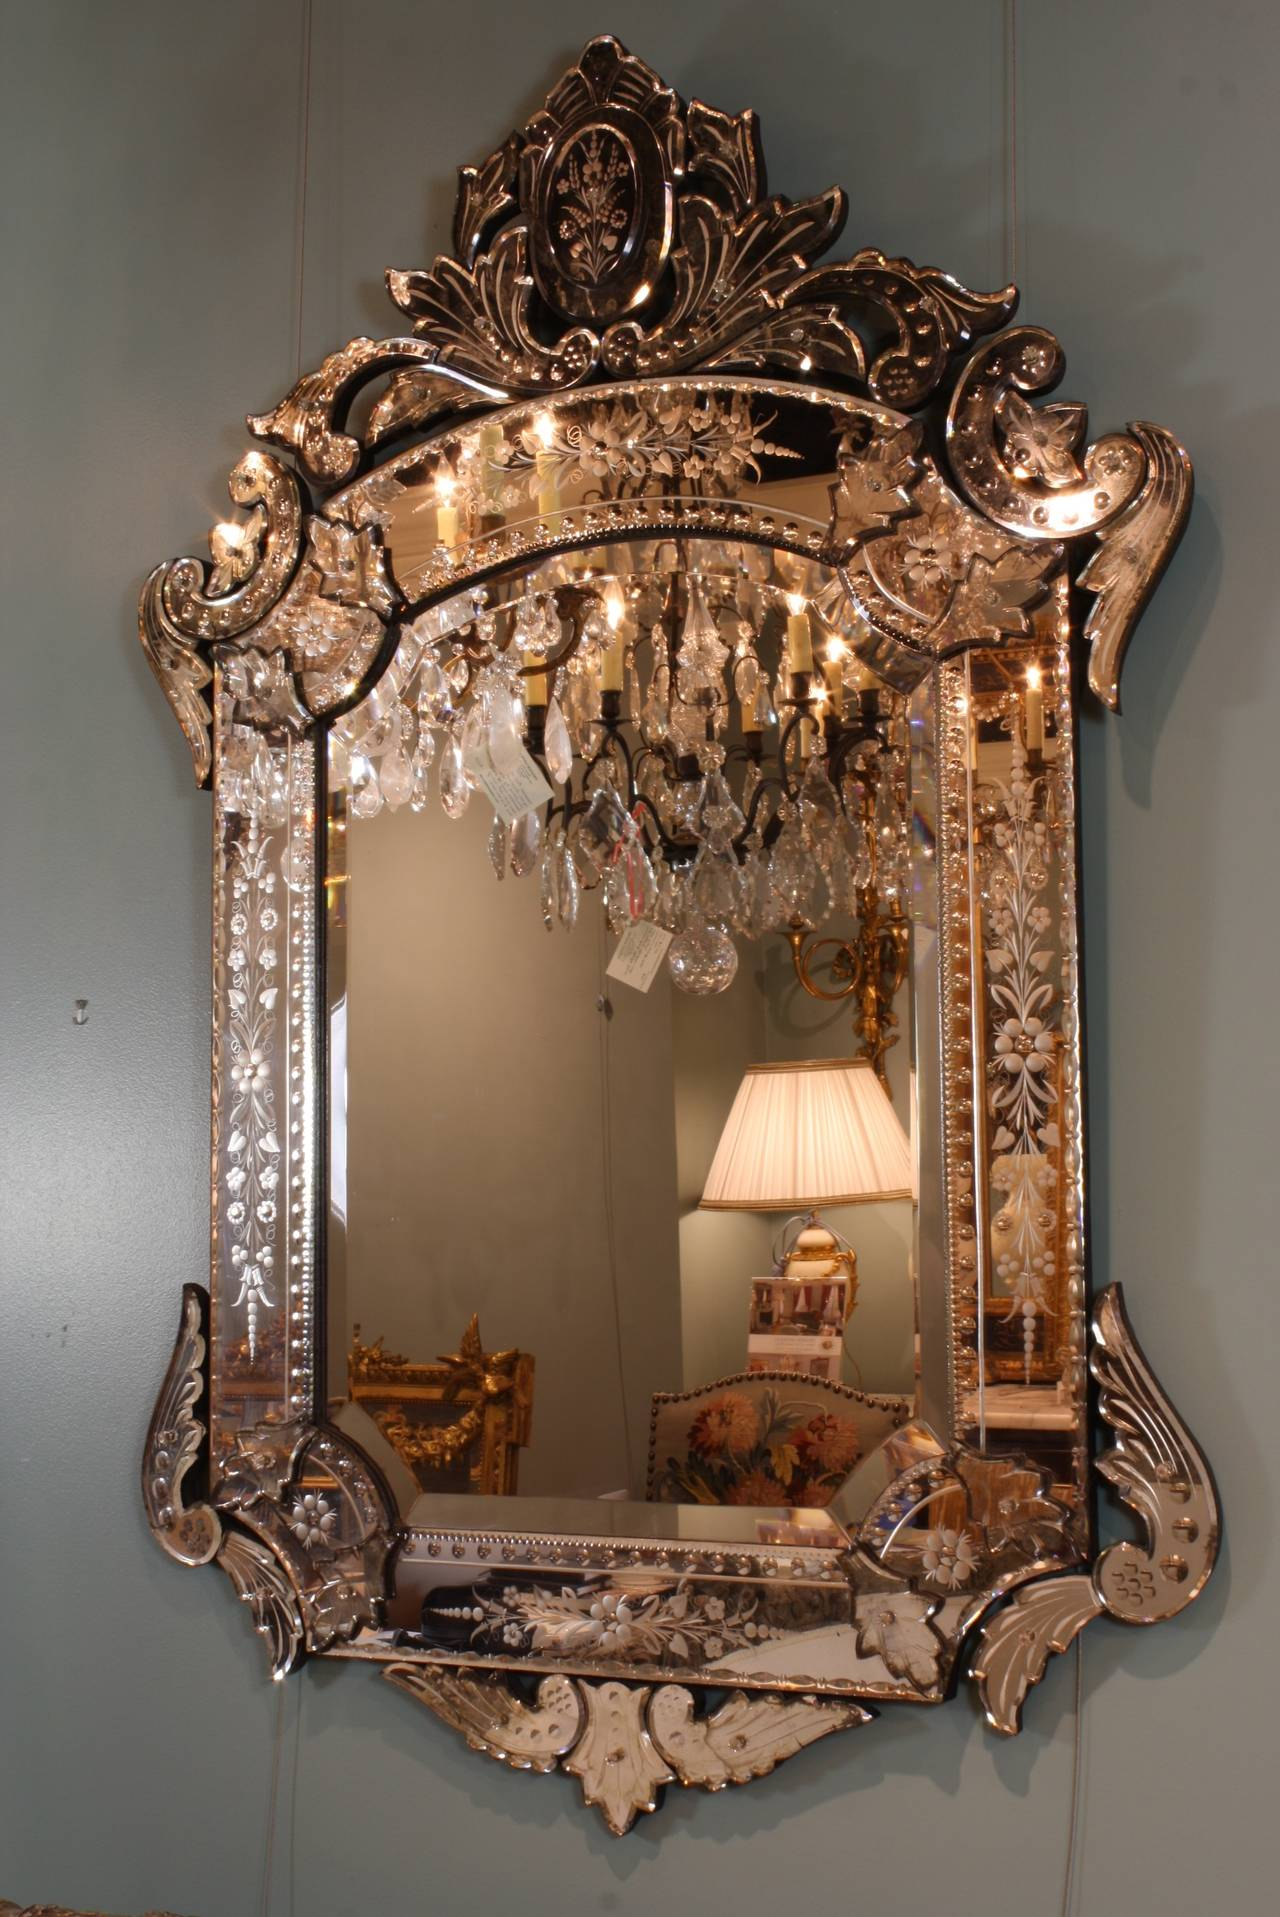 Glass Ornate Venetian Rococo Mirror For Sale